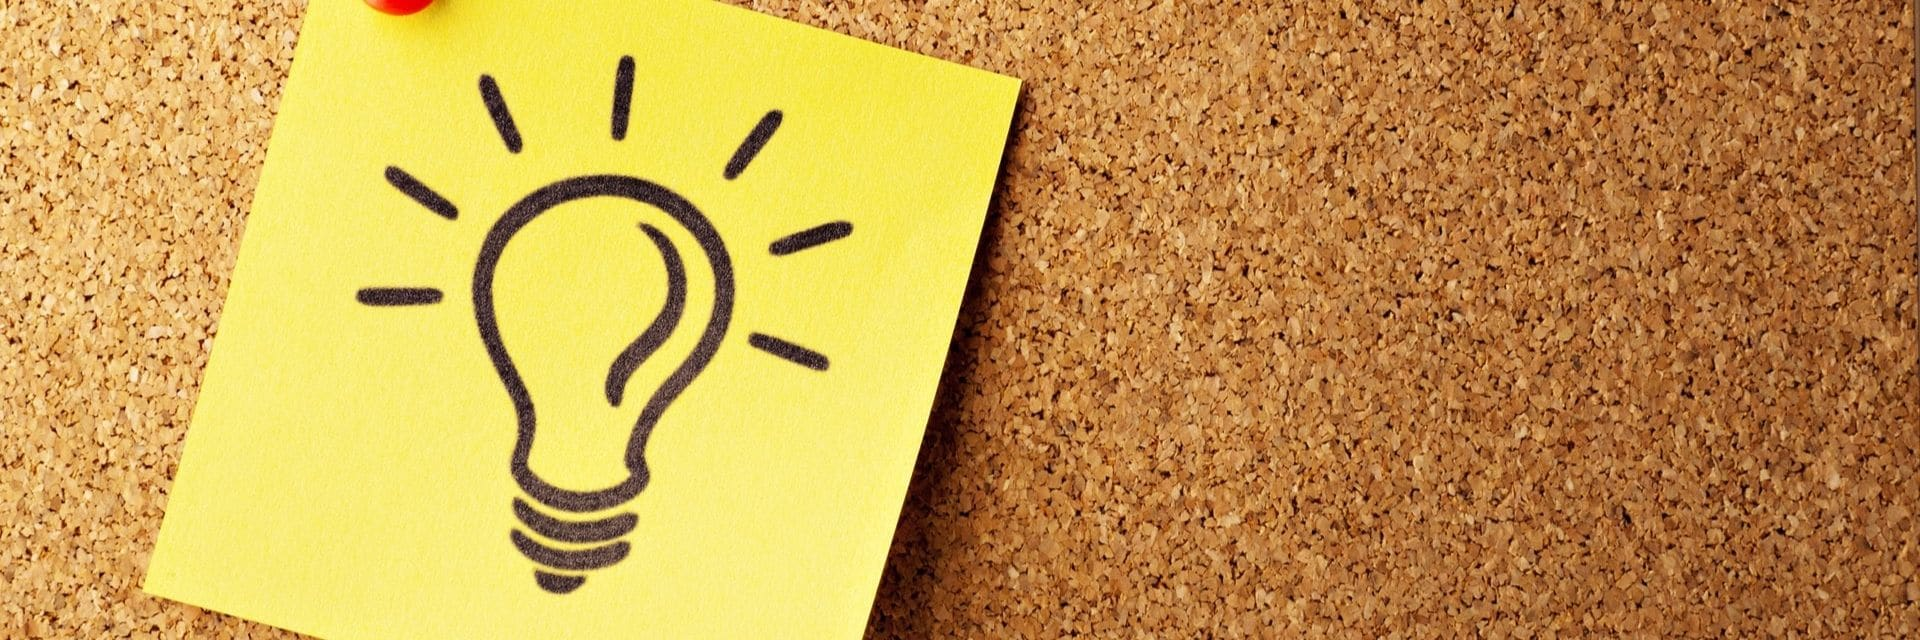 Post-it note with light bulb drawn on it, representing a recruitment idea